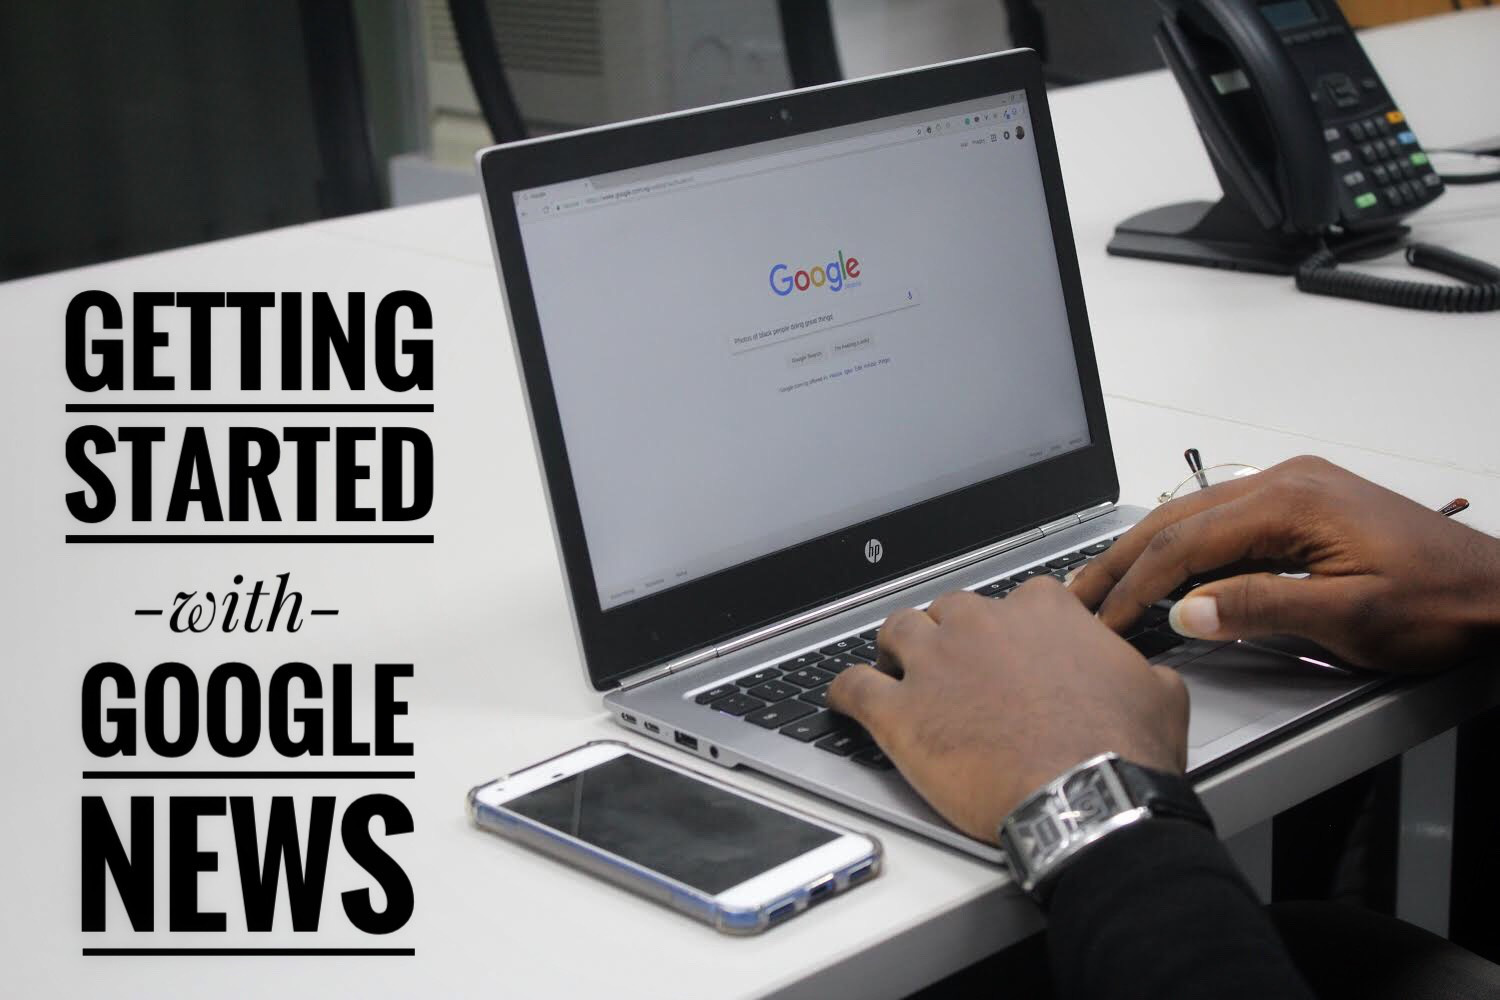 Publish on Google News in 3 Steps